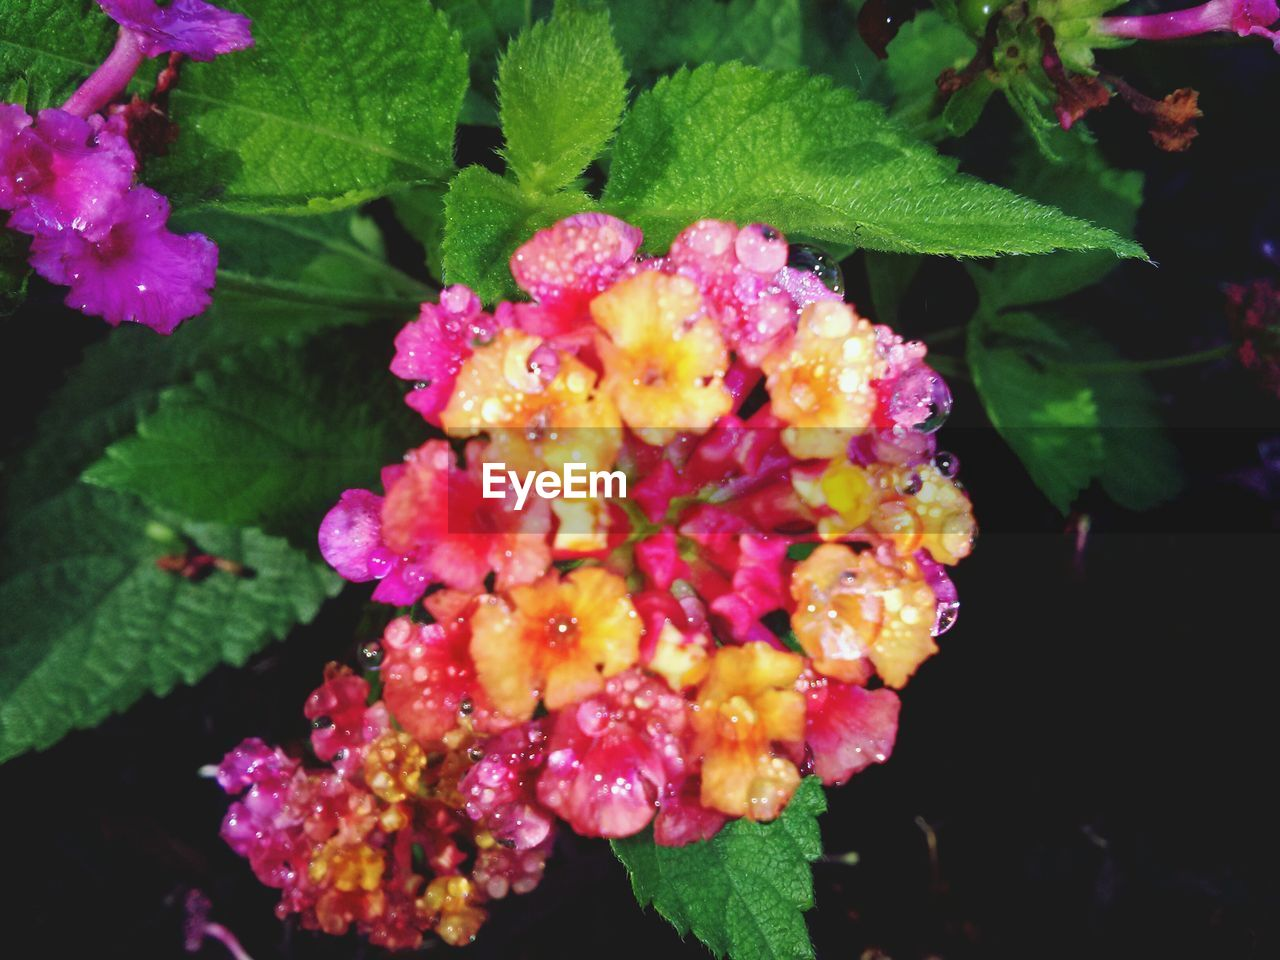 flower, growth, beauty in nature, freshness, fragility, lantana, leaf, lantana camara, plant, nature, petal, outdoors, green color, pink color, flower head, no people, day, close-up, blooming